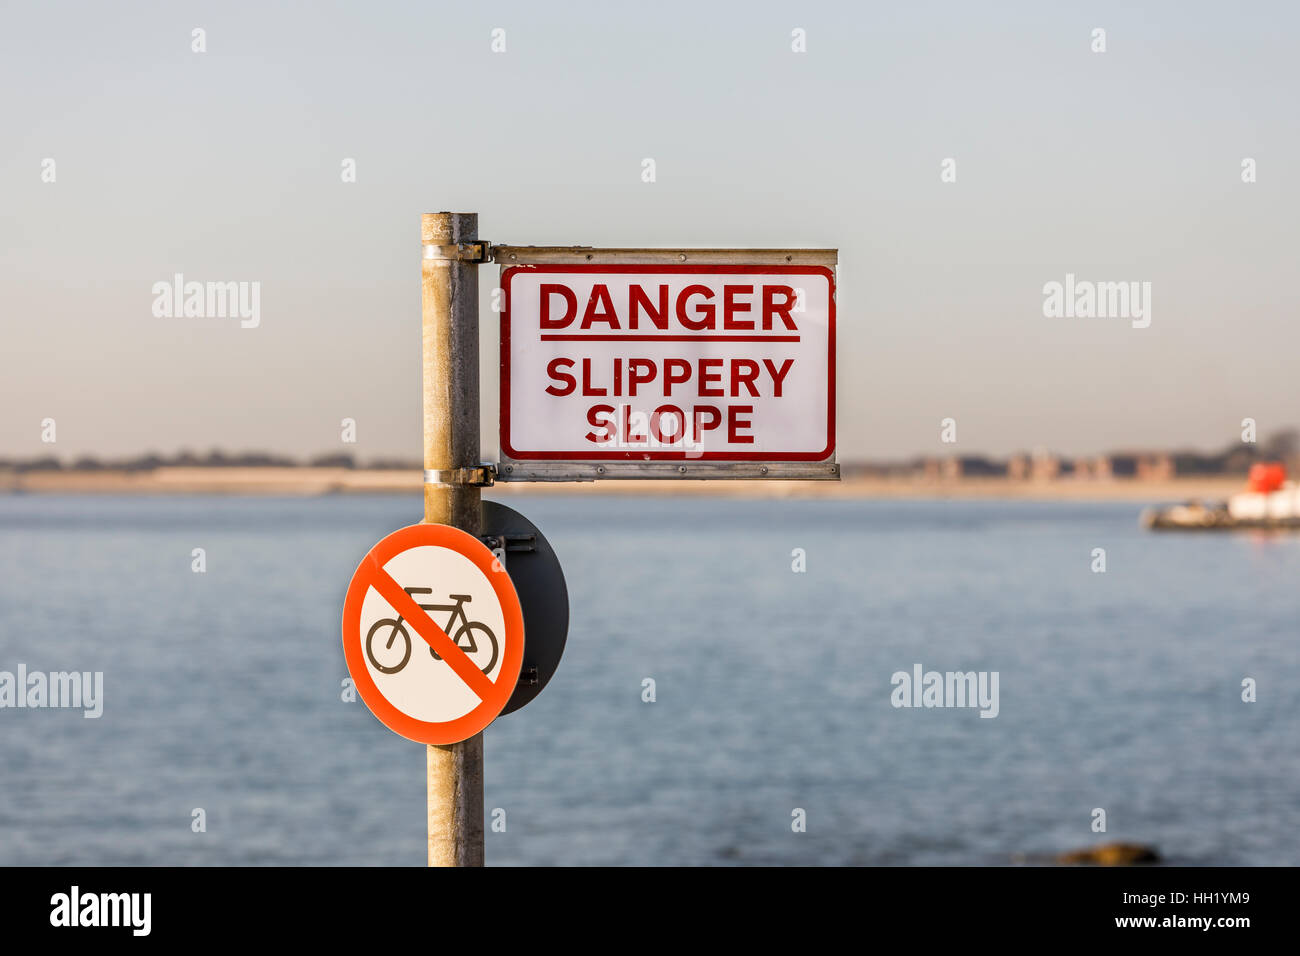 Warning sign 'Danger, slippery slope' and round no cycling road sign on the seafront promenade at Southsea, - Stock Image